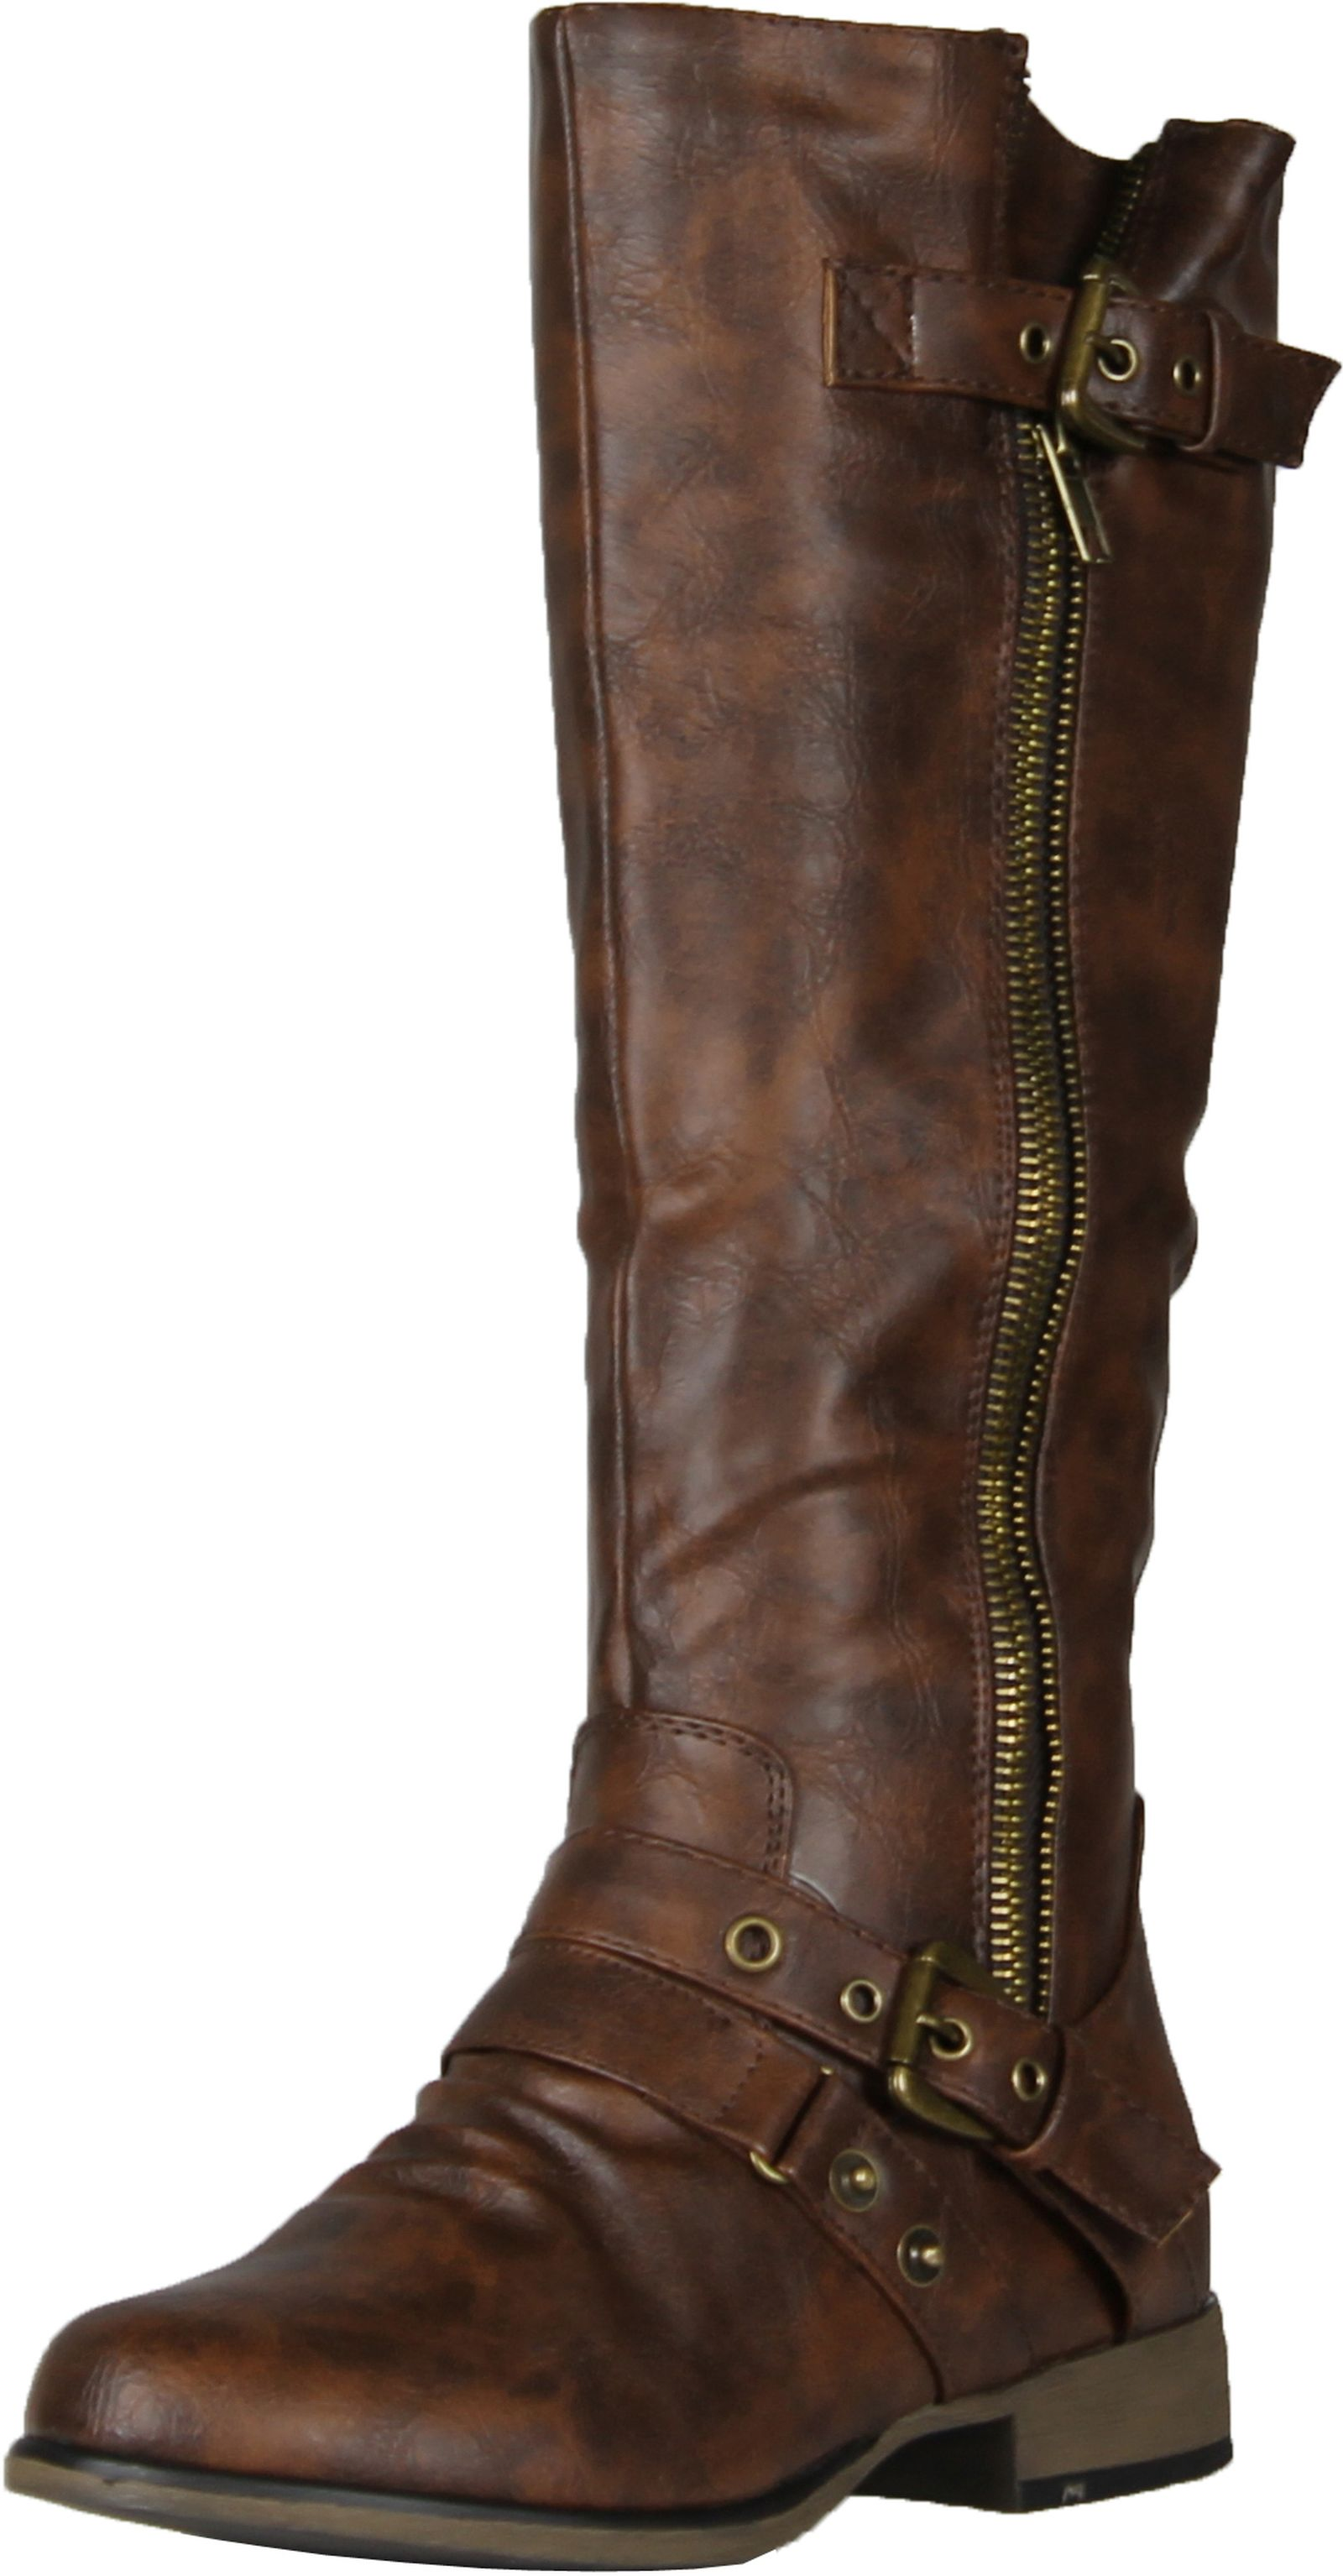 Forever Link Womens Chapter-14 Boots - ShoeCenter.com 11dfb1cb02